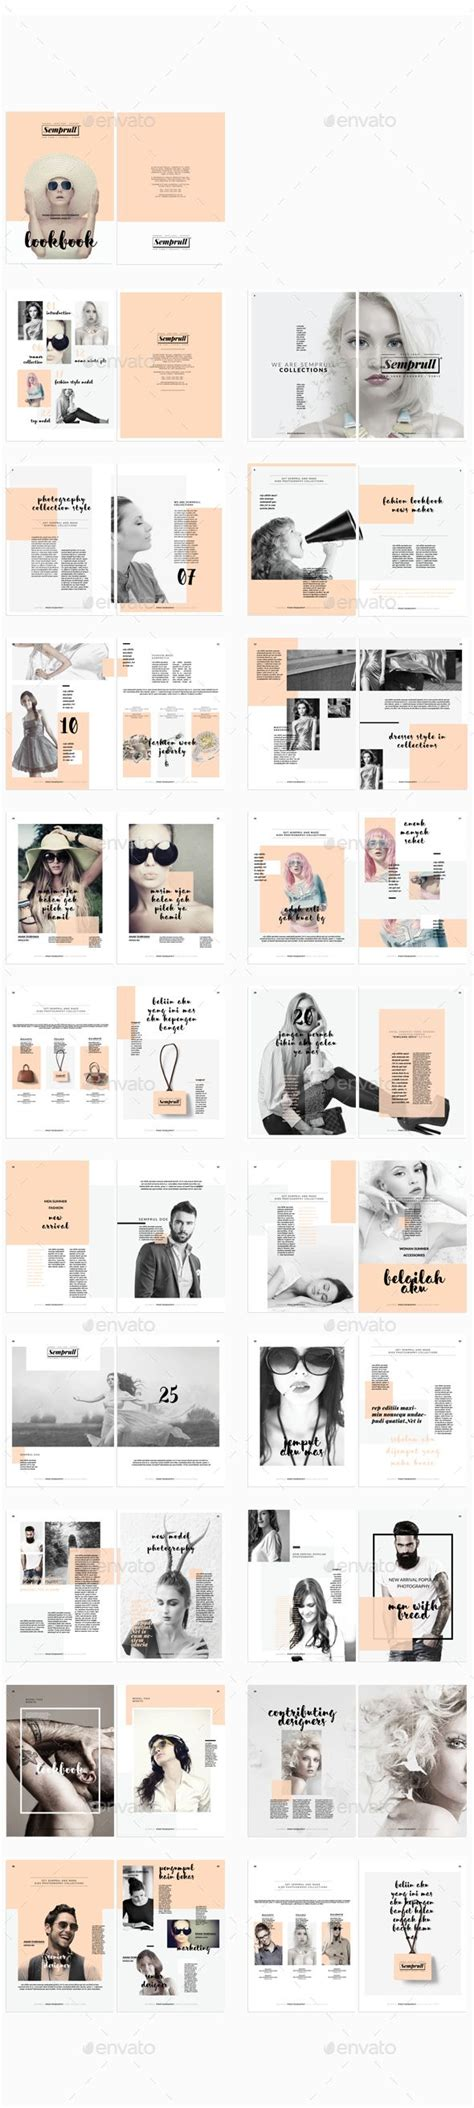 designing in indesign for powerpoint 25 best ideas about lookbook design on pinterest